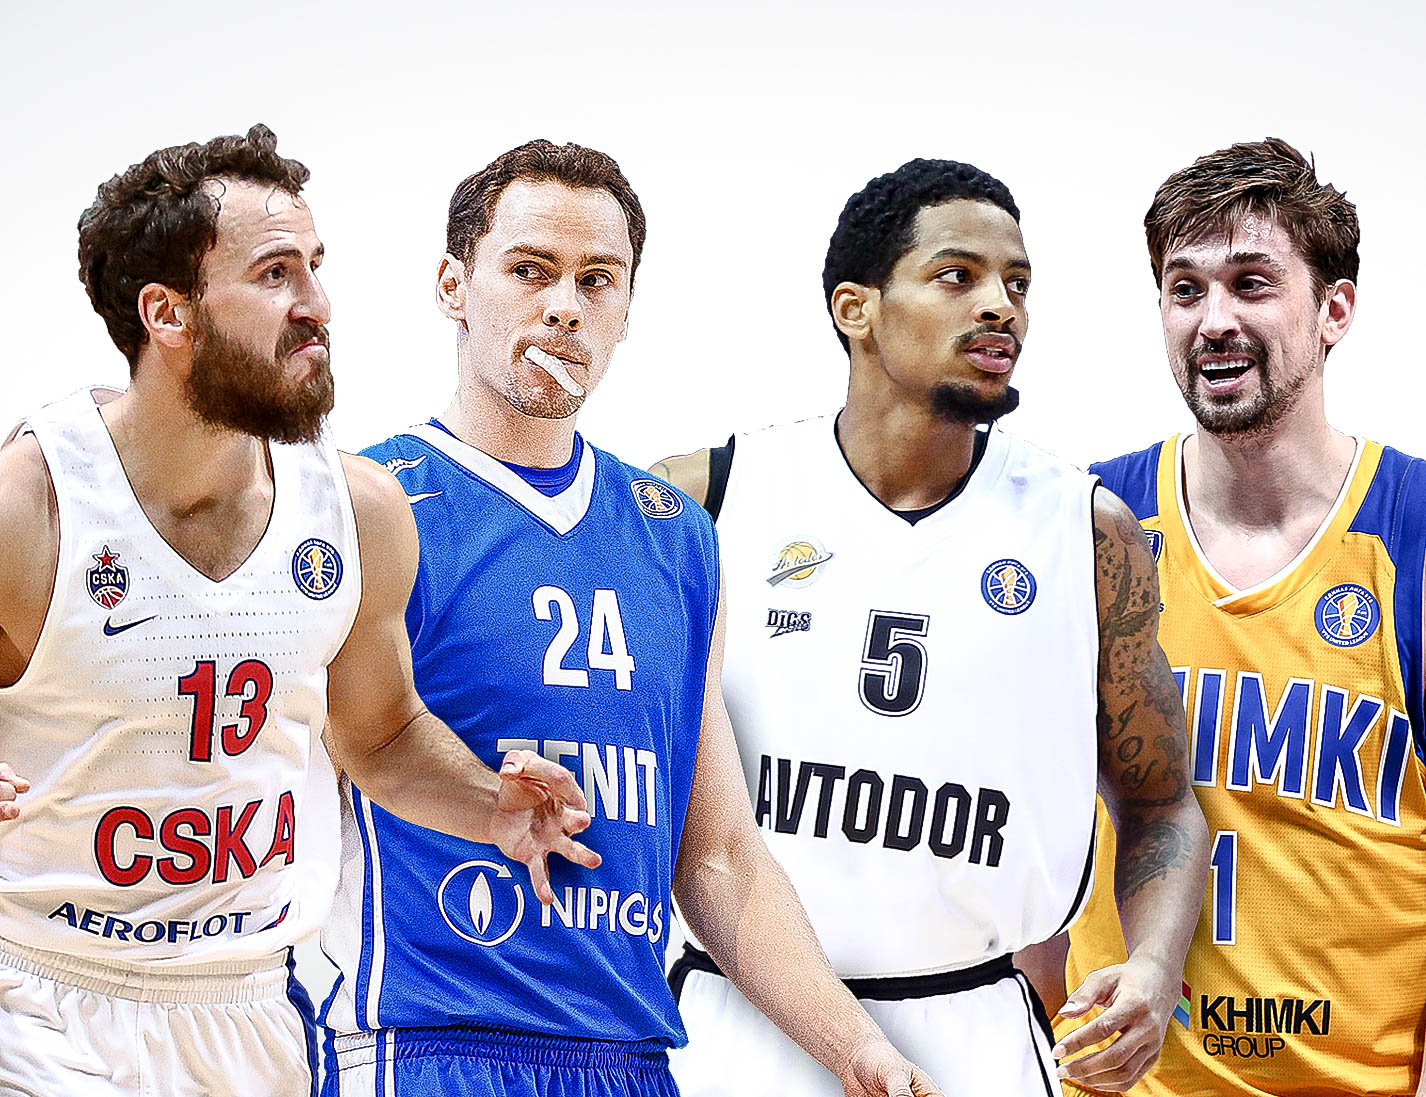 Super Saturday: CSKA vs. Zenit And Avtodor vs. Khimki